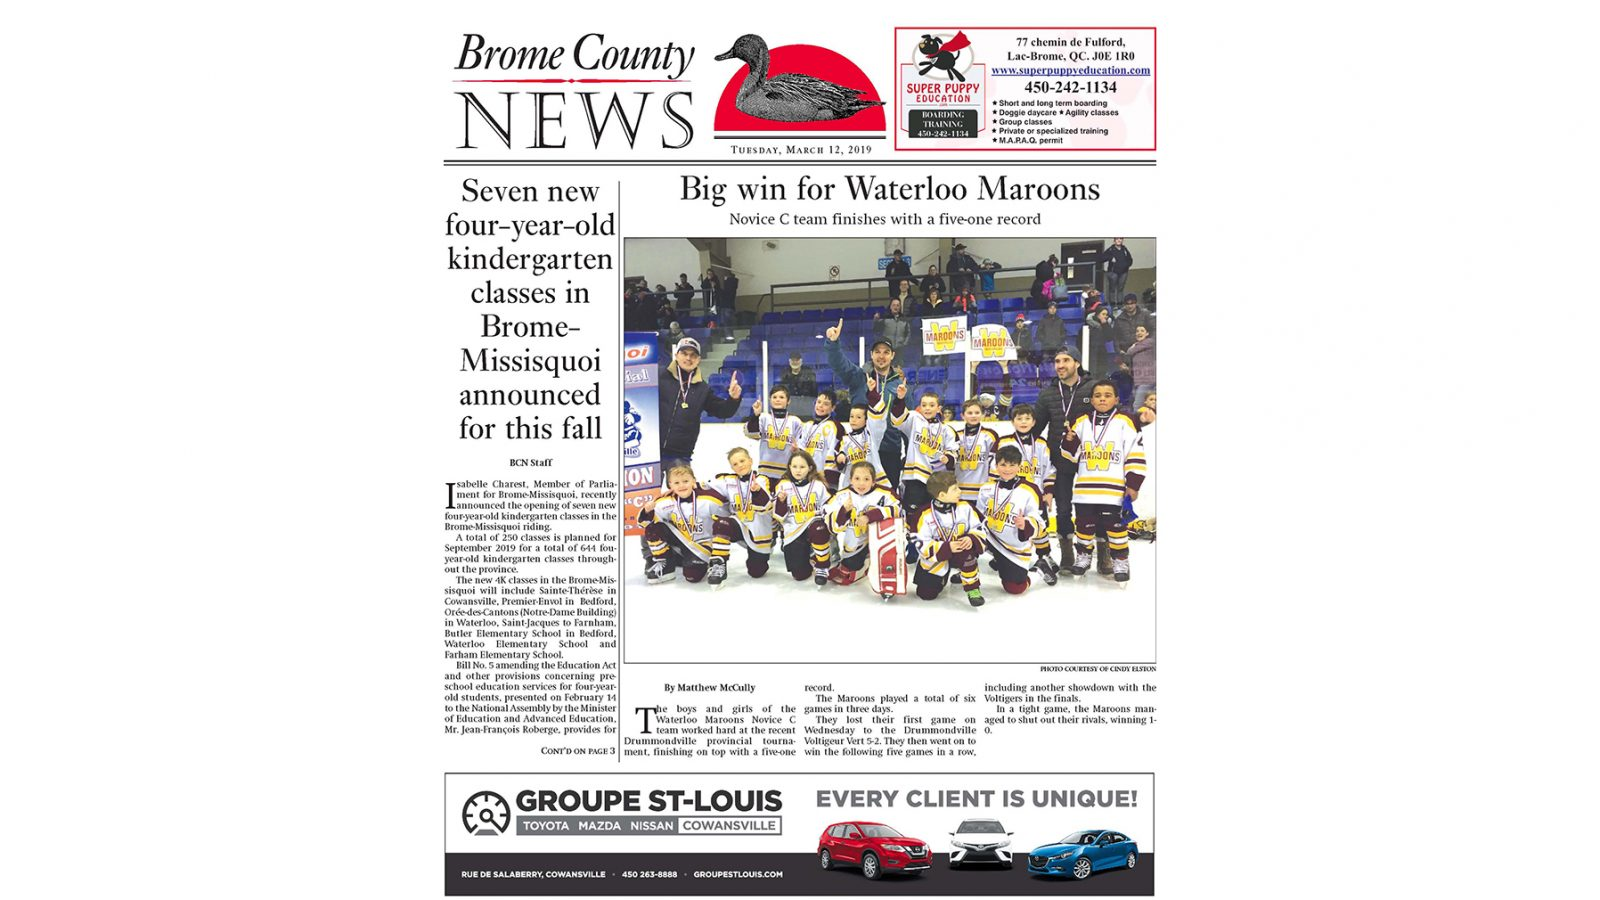 Brome County News – March 12, 2019 edition